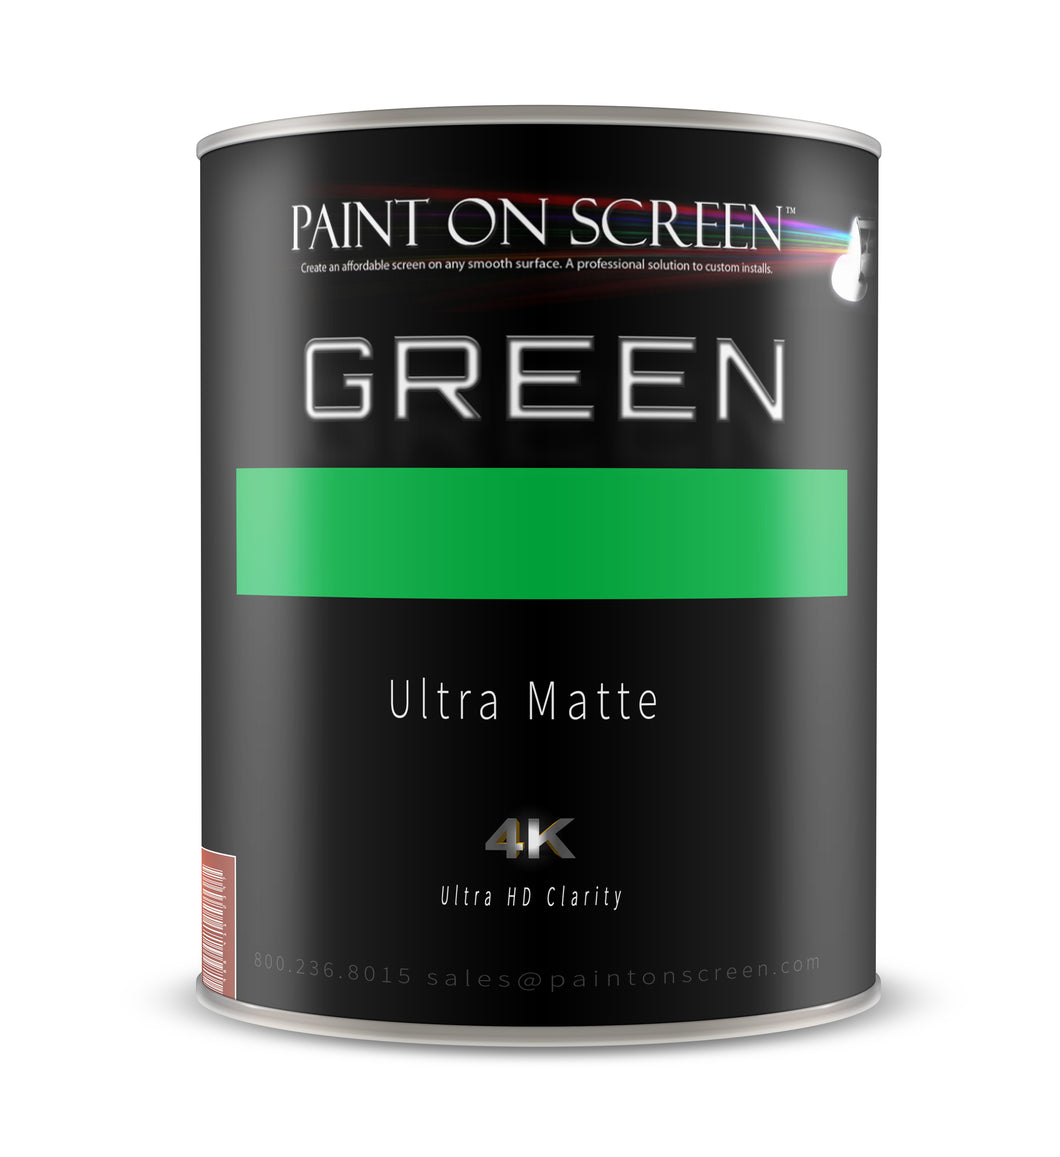 Chroma Key Green Paint